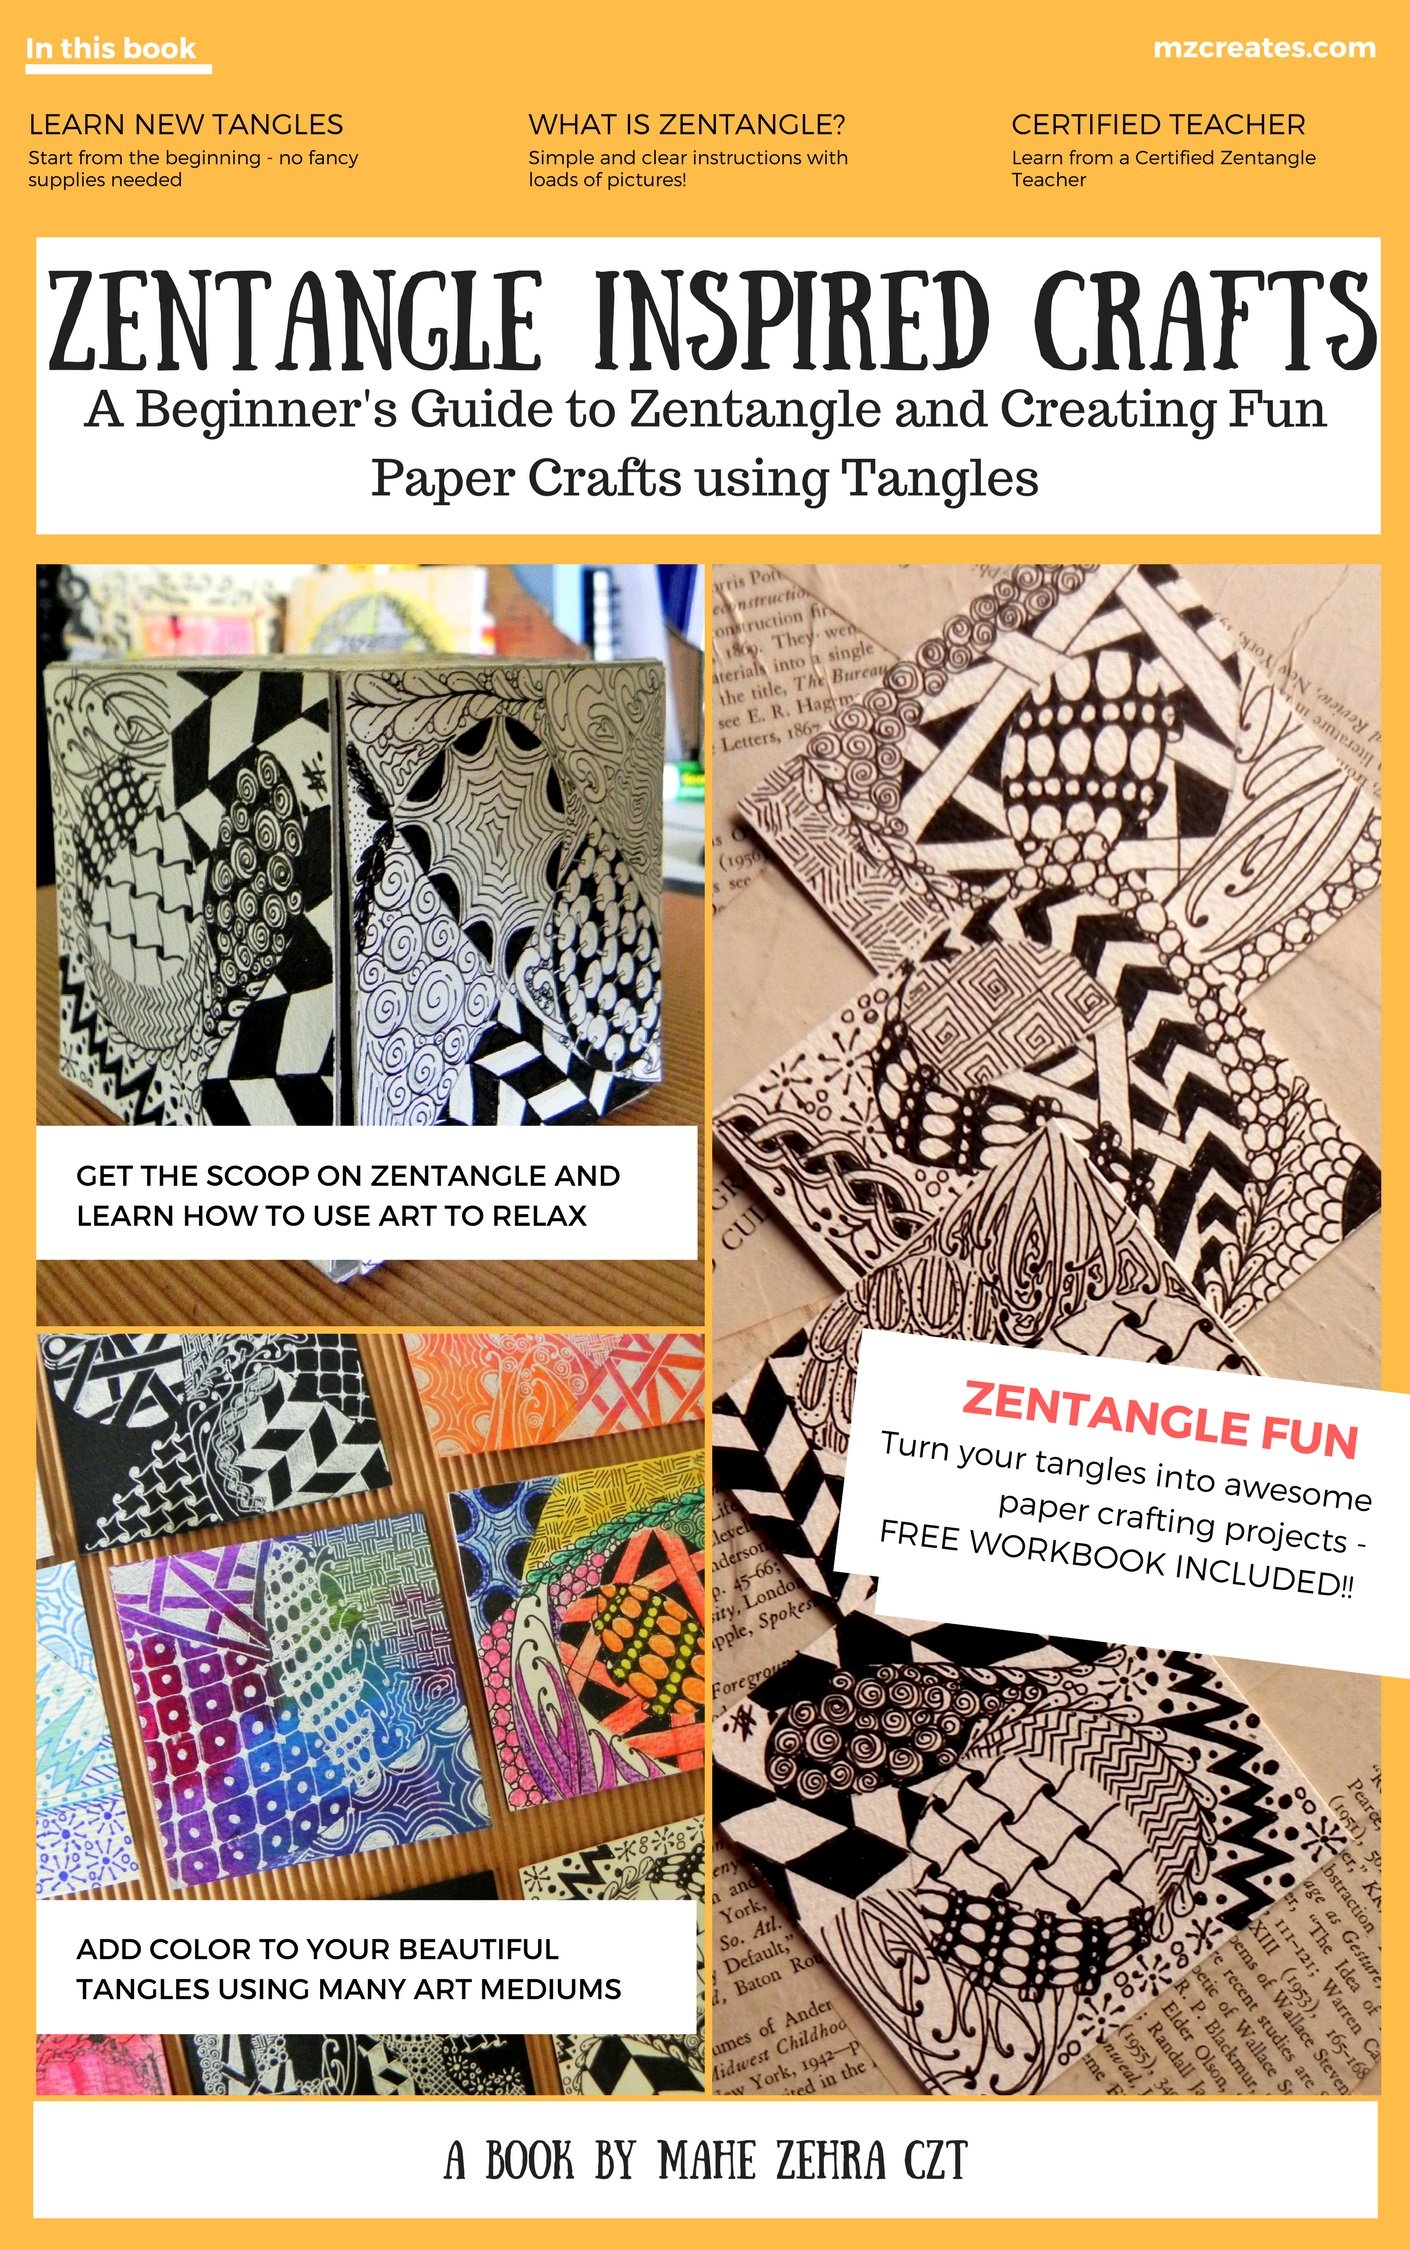 Zentangle Inspired Crafts  A Beginners Guide To Zentangle Art And Zentangle Inspired Art And Craft Projects  English Edition